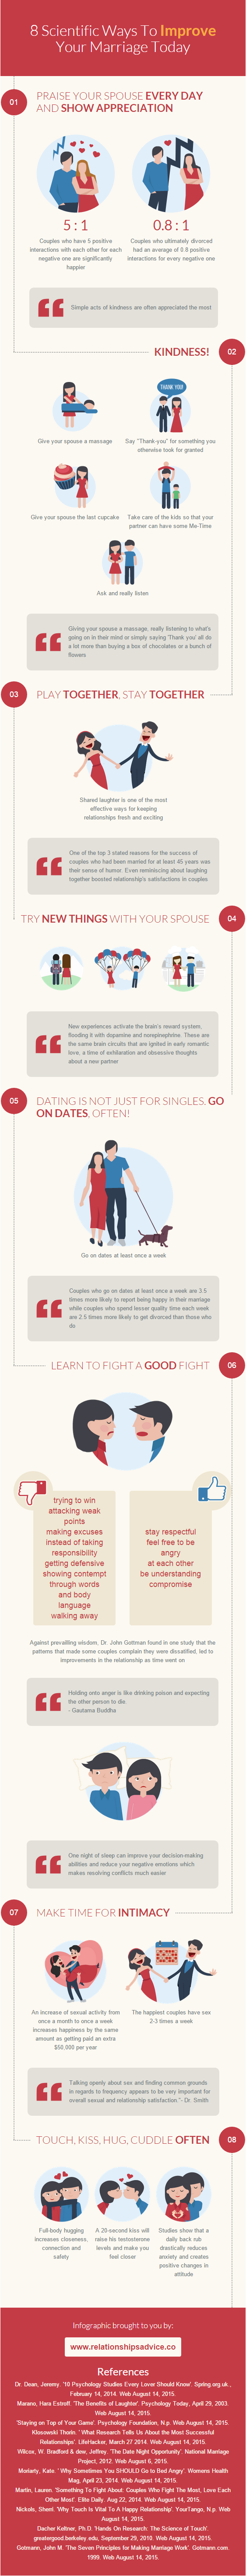 8 Scientifically Proven Tips to Improve a Marriage